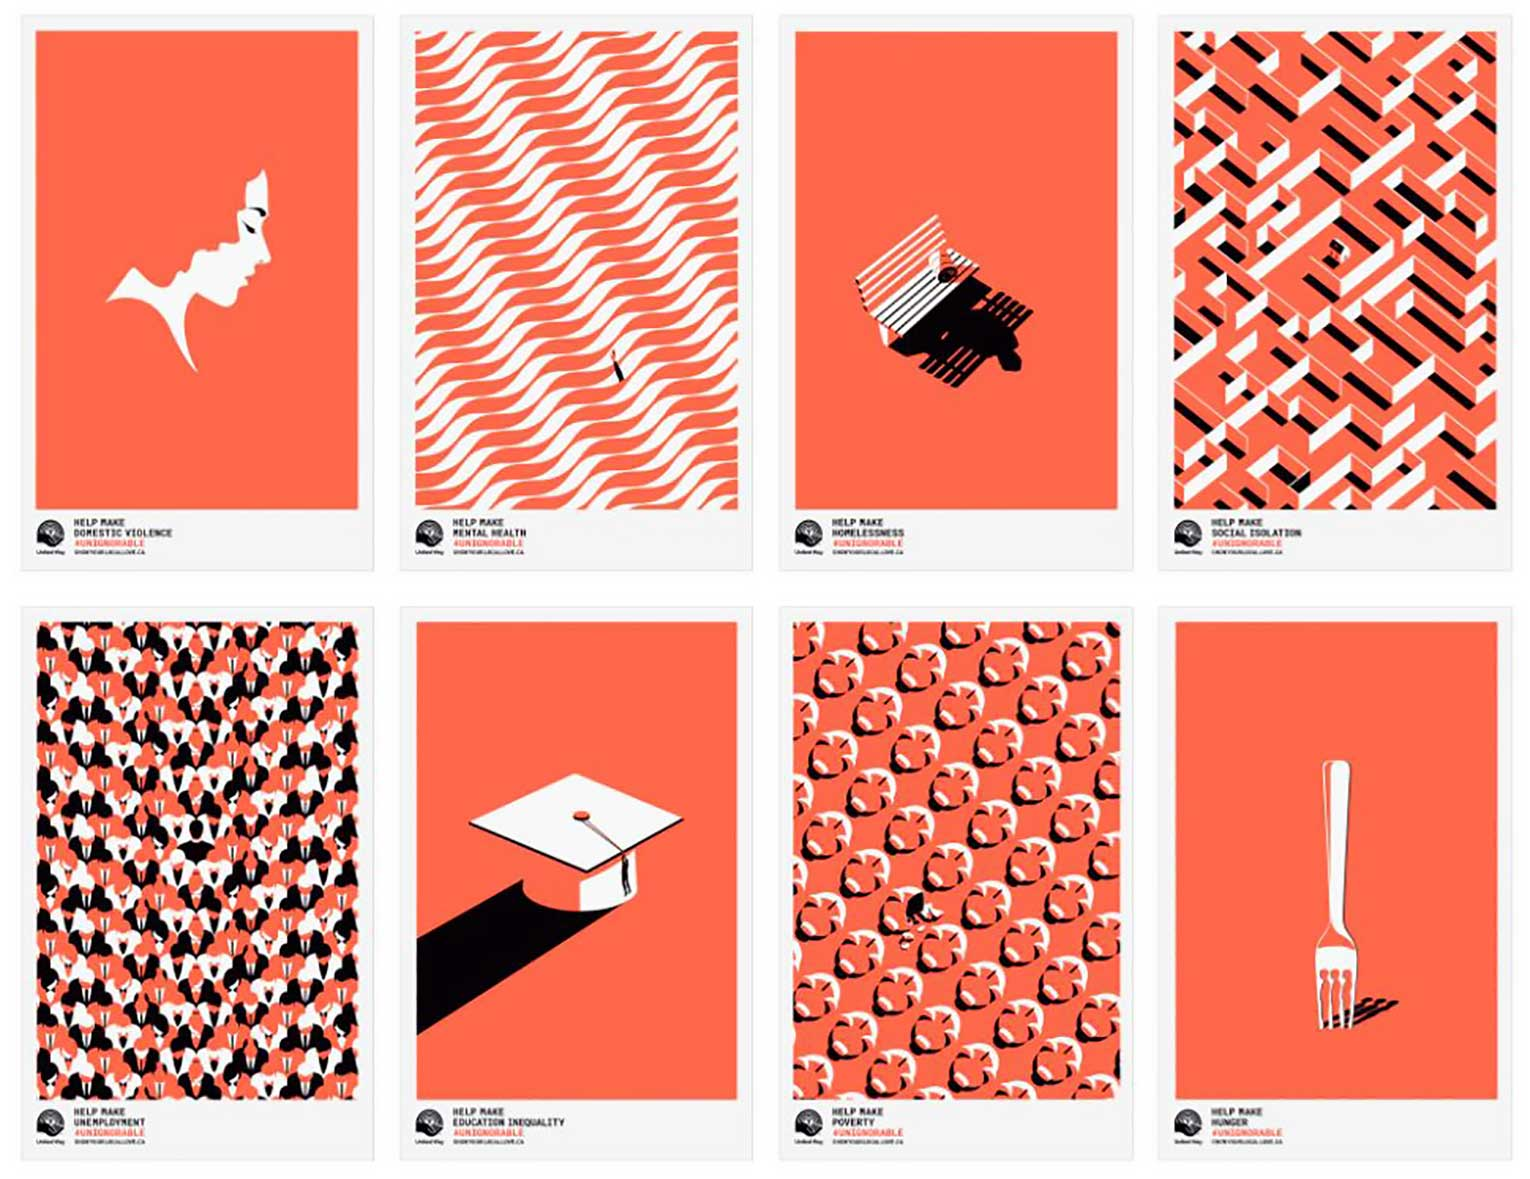 Eight pieces of artwork used in the Unignorable campaign. Each addresses an issue that affects Canadians in every community: domestic violence, mental health, unemployment, homelessness, education inequality, social isolation, poverty and hunger.